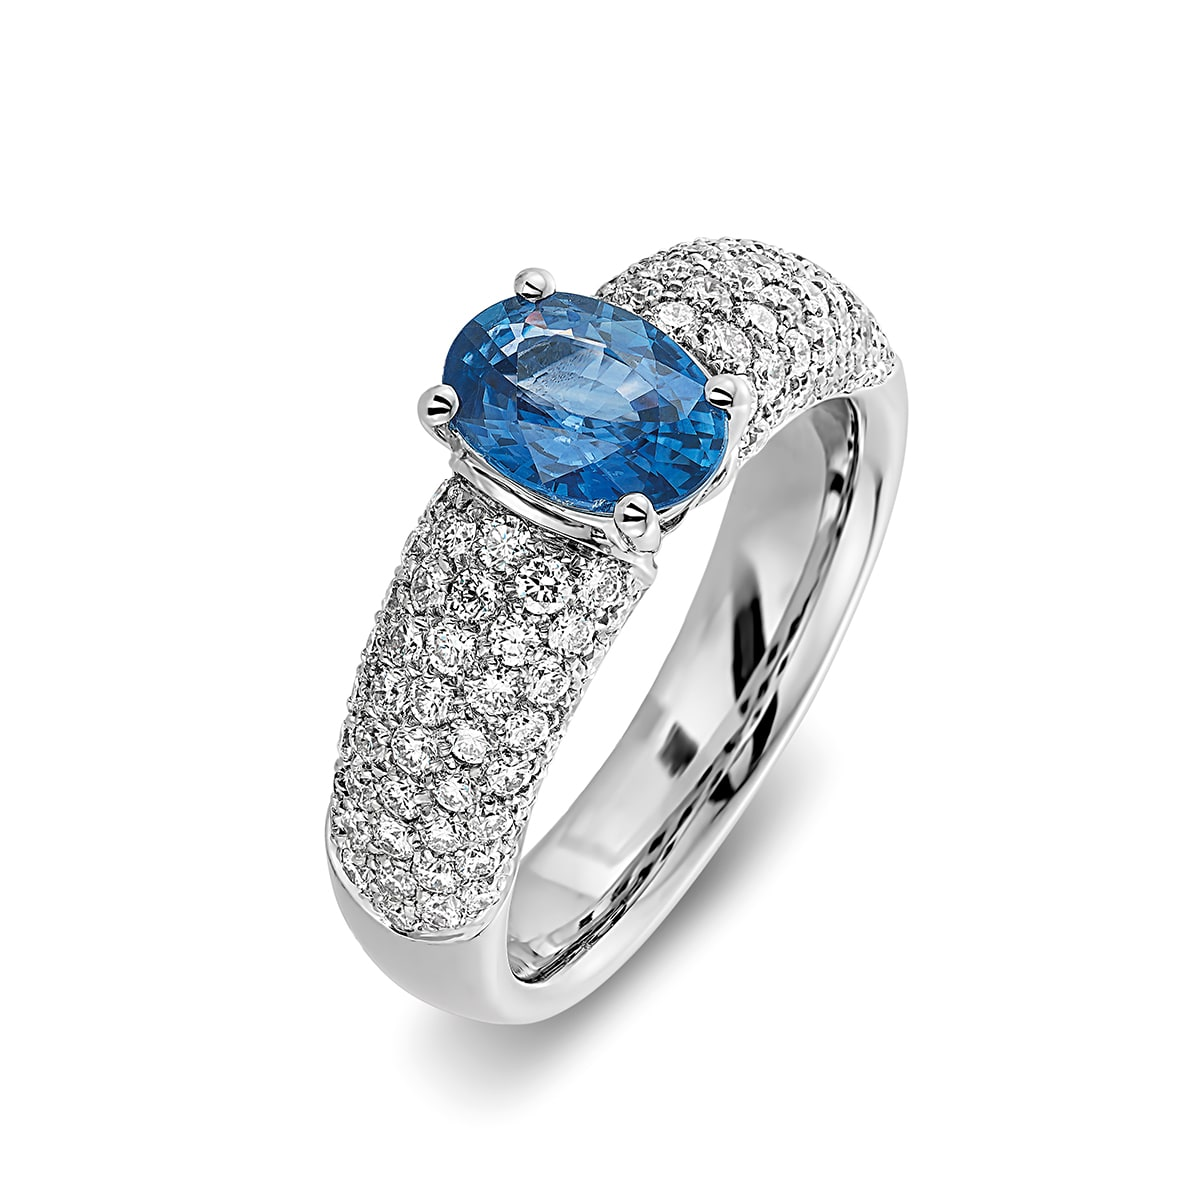 Ring blauwe saffier en diamanten